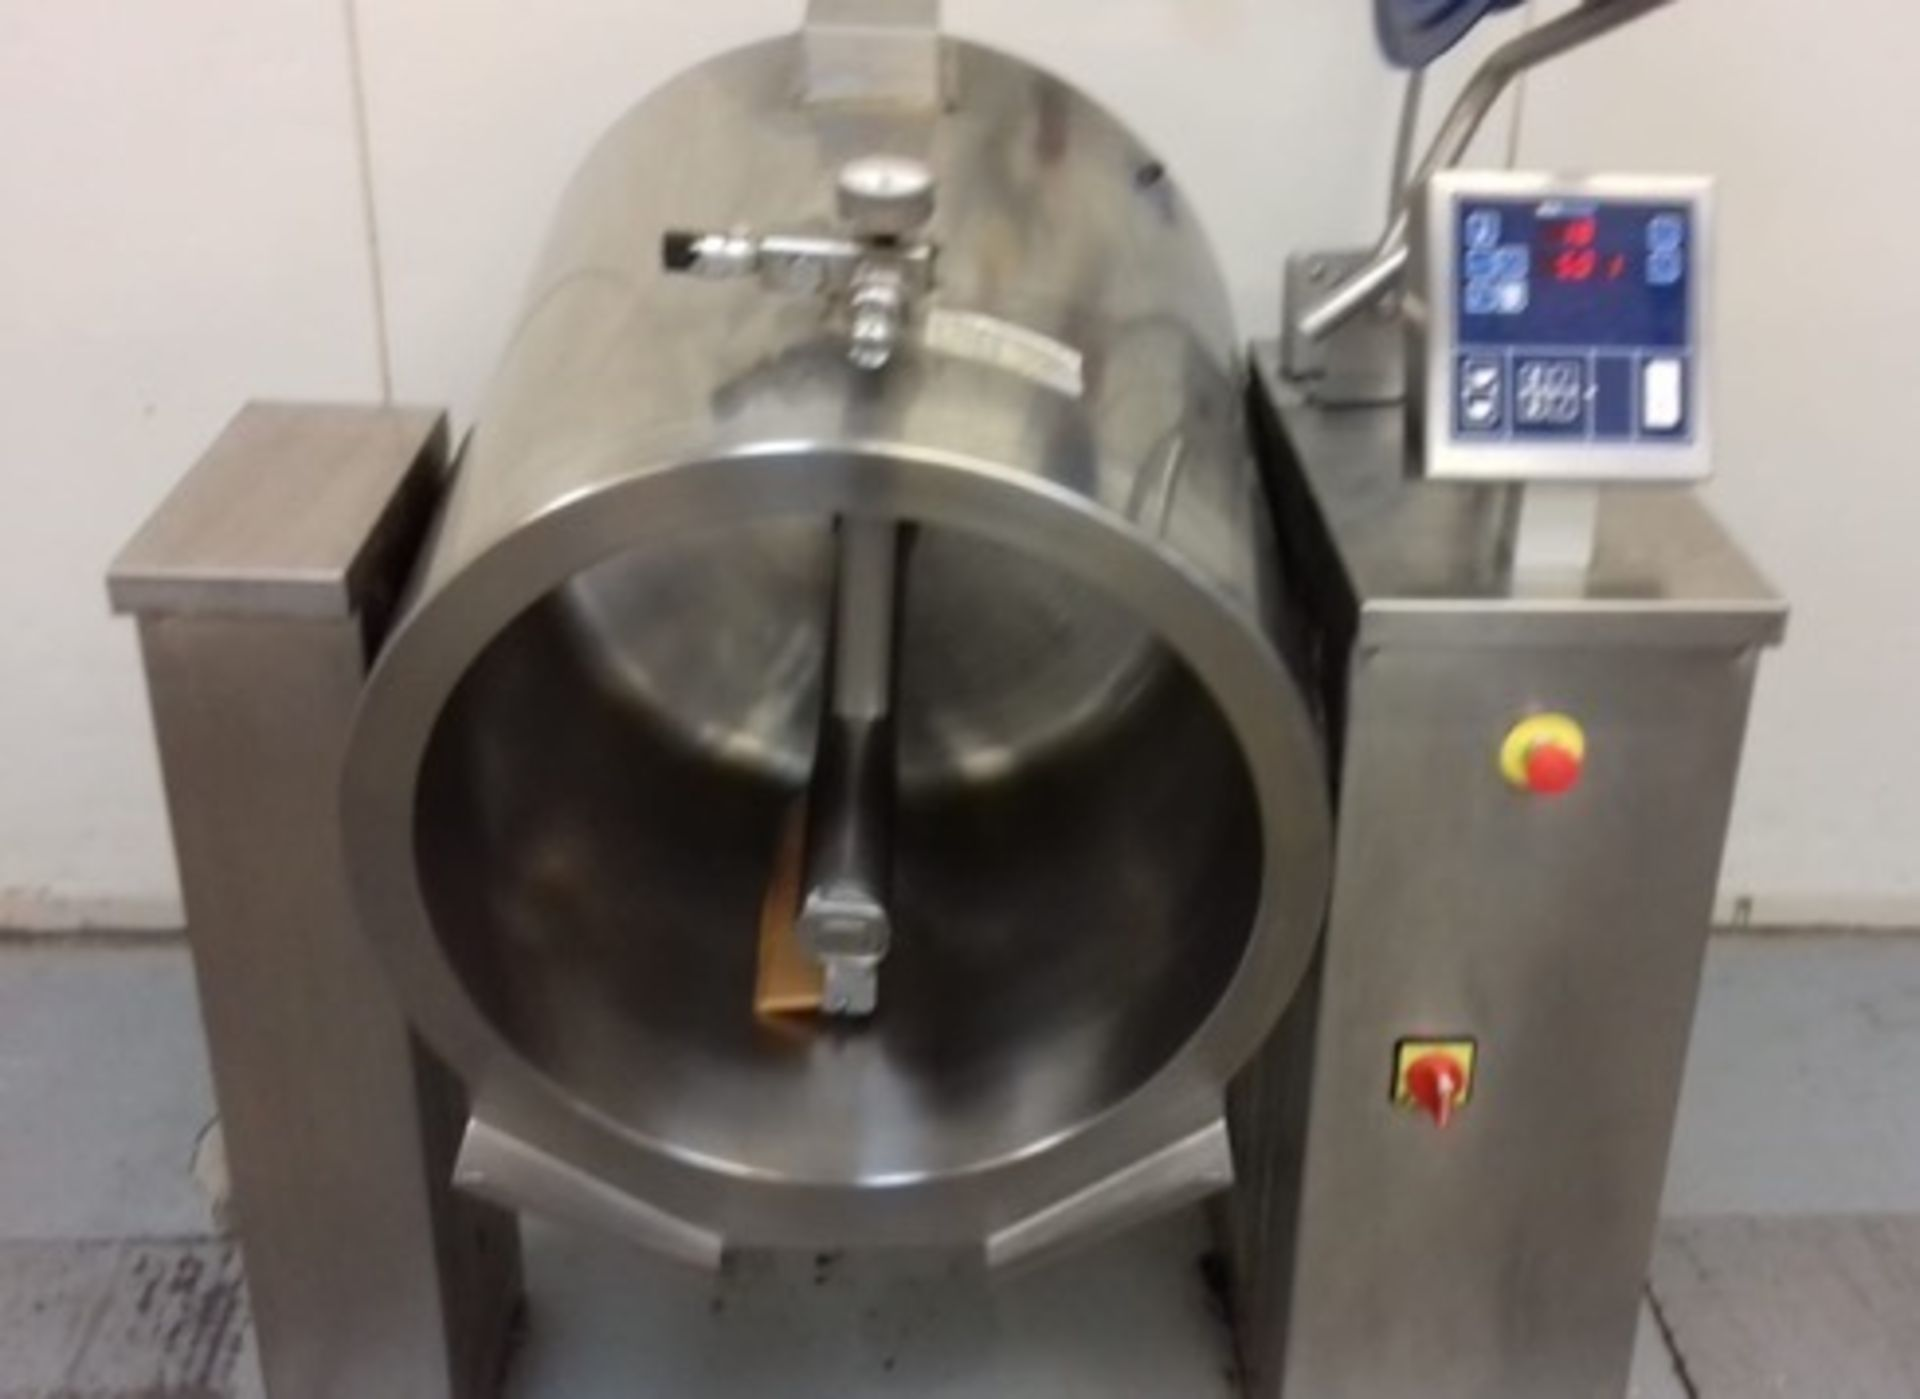 Lot 20 - Joni120 litre cooking Vessel with stirrer, electric heating, full digital read out an. Lift out £35